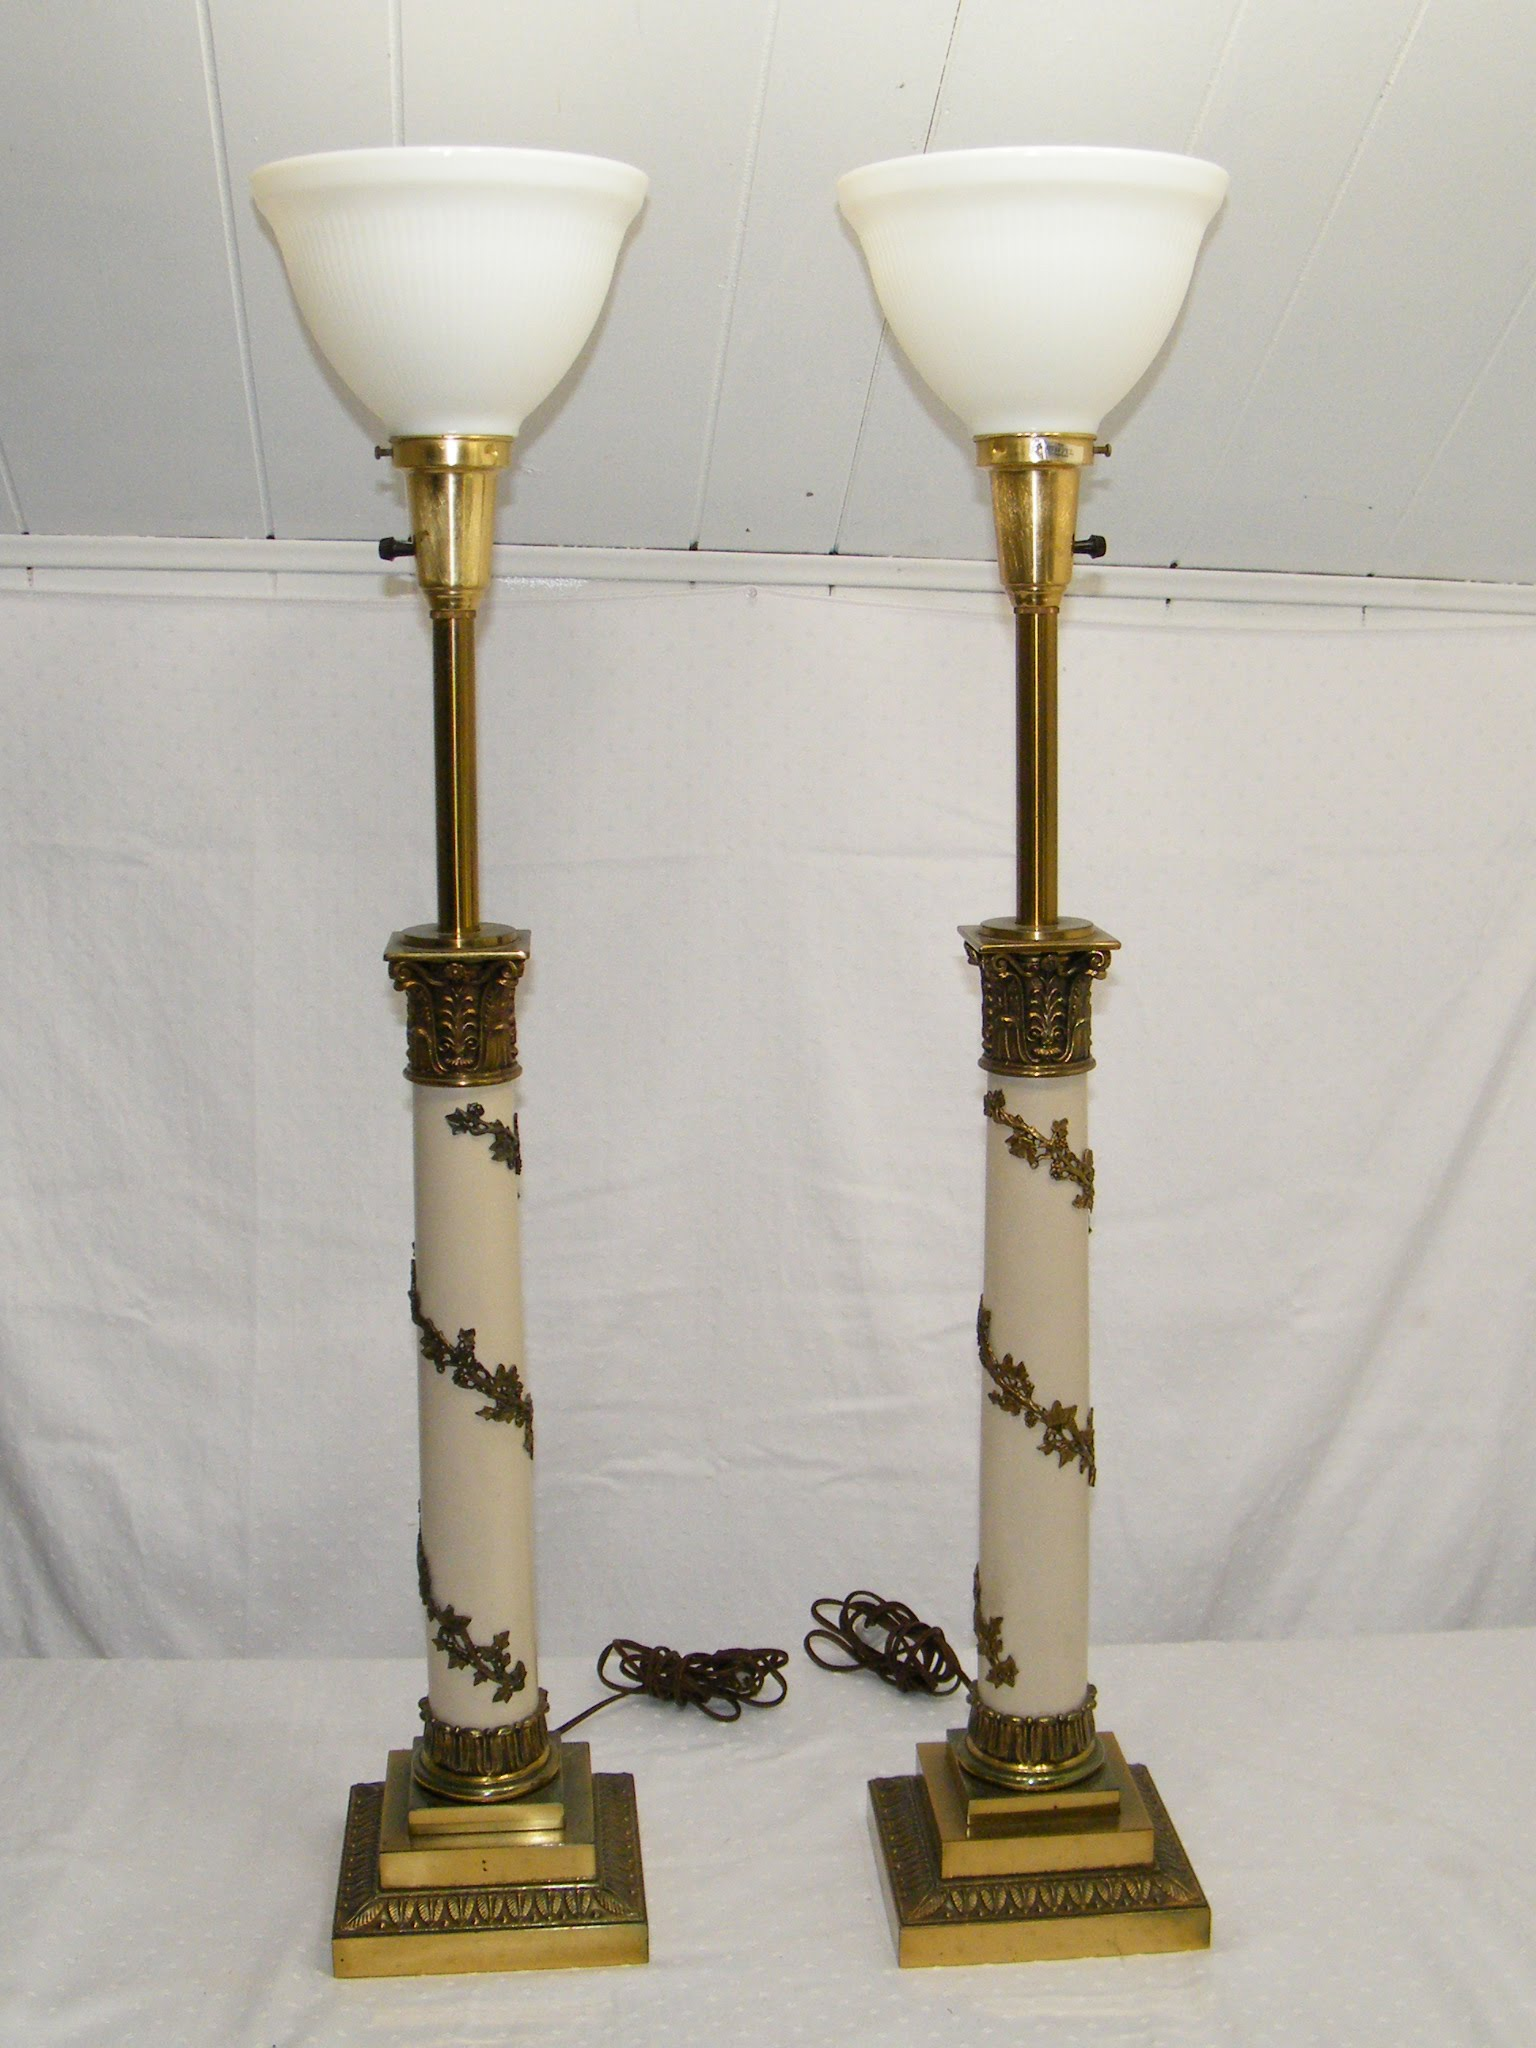 Make your room amazing with antique torchiere floor lamp warisan conclusion aloadofball Image collections